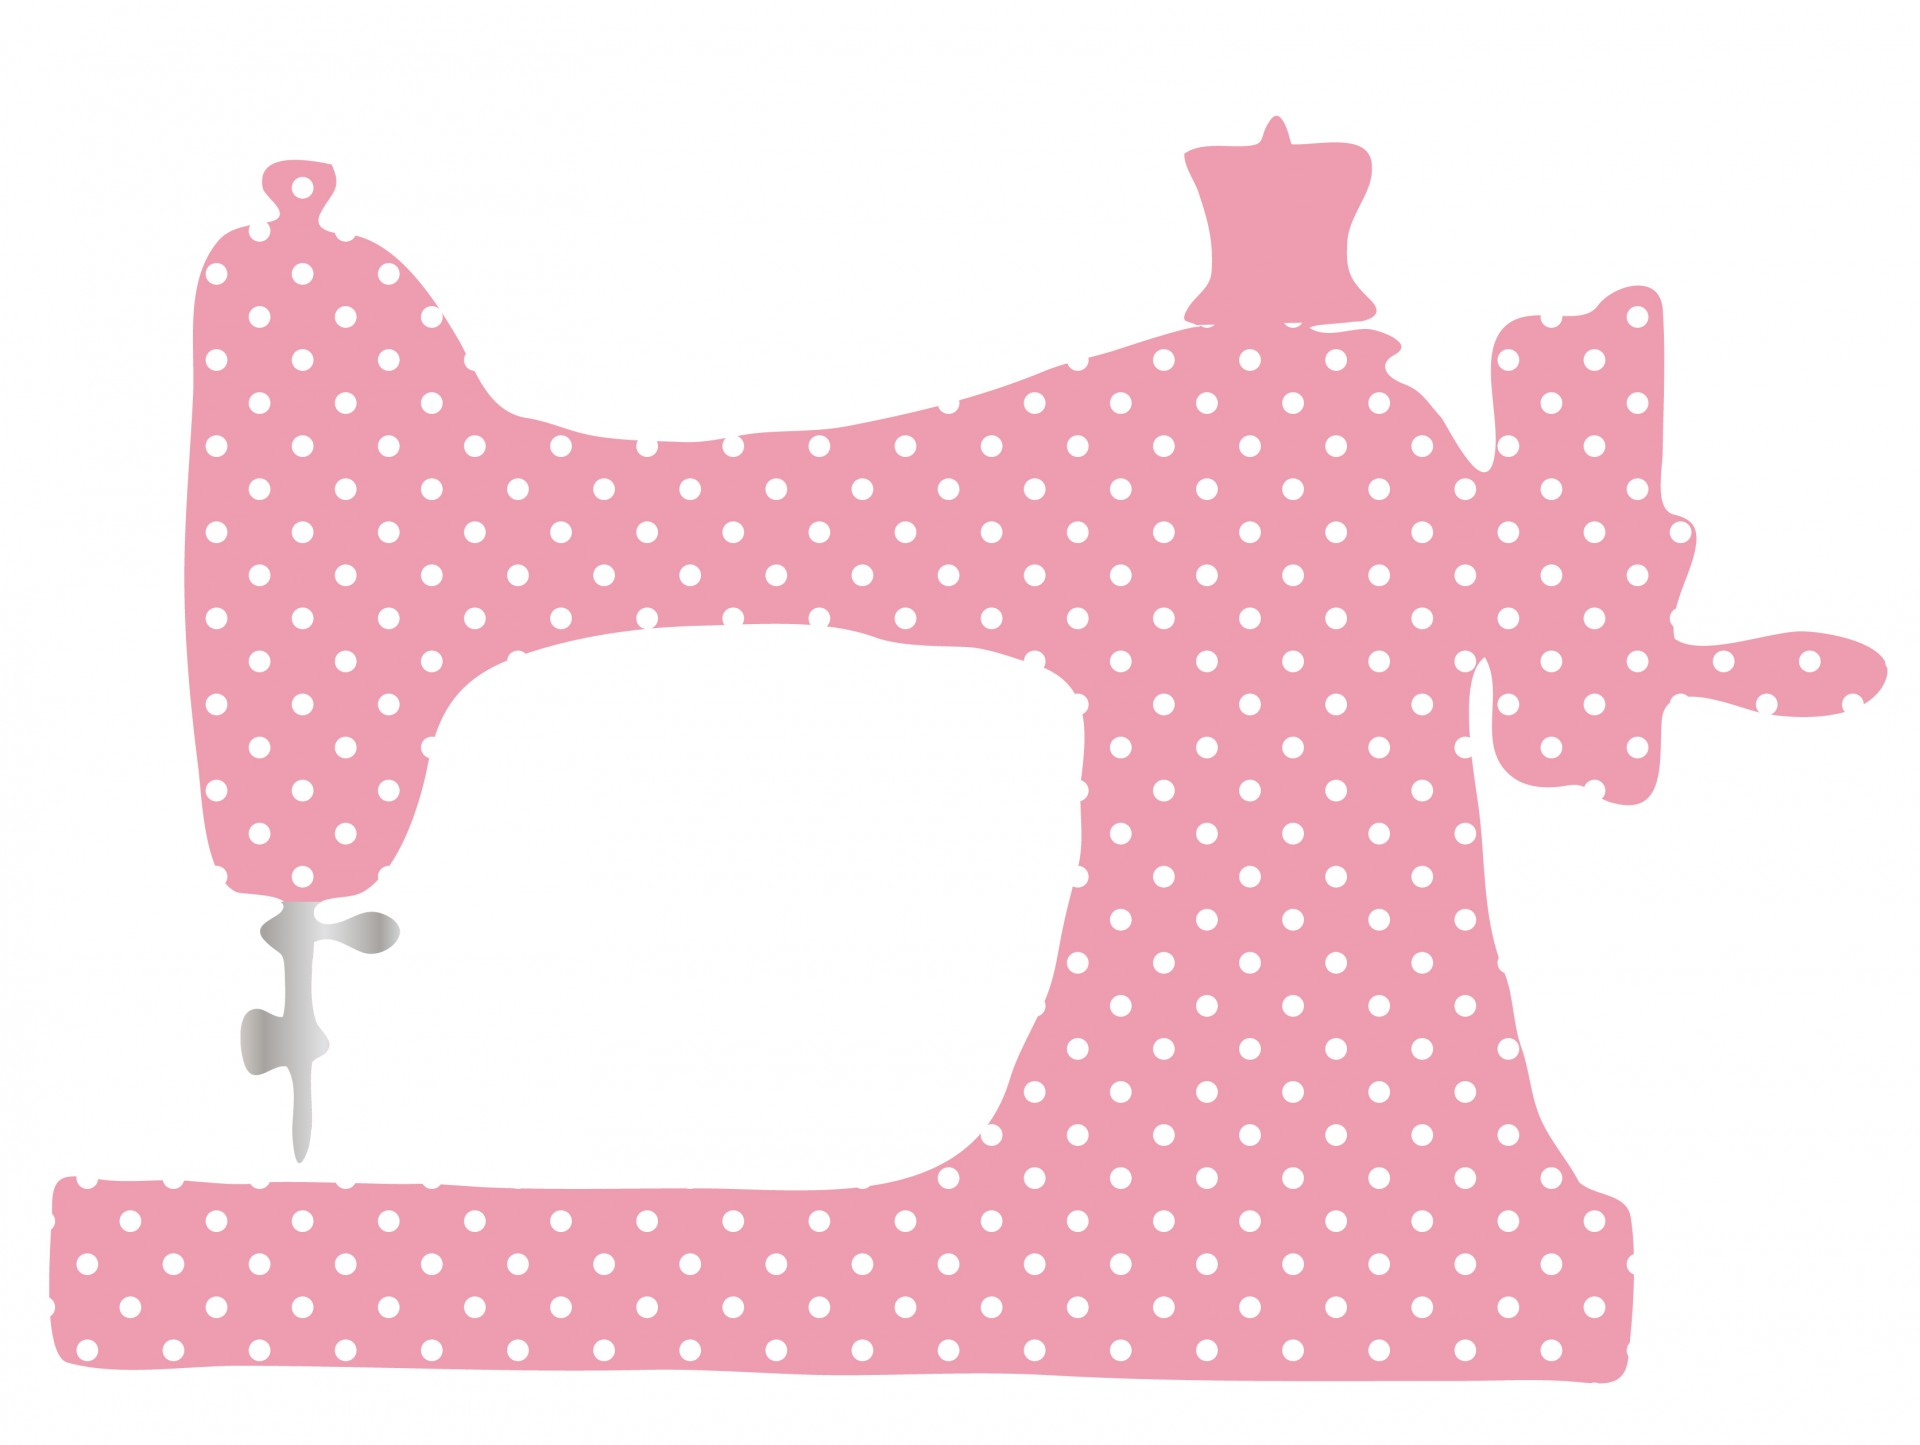 Vintage Sewing Machine Clipart-Vintage Sewing Machine Clipart-2